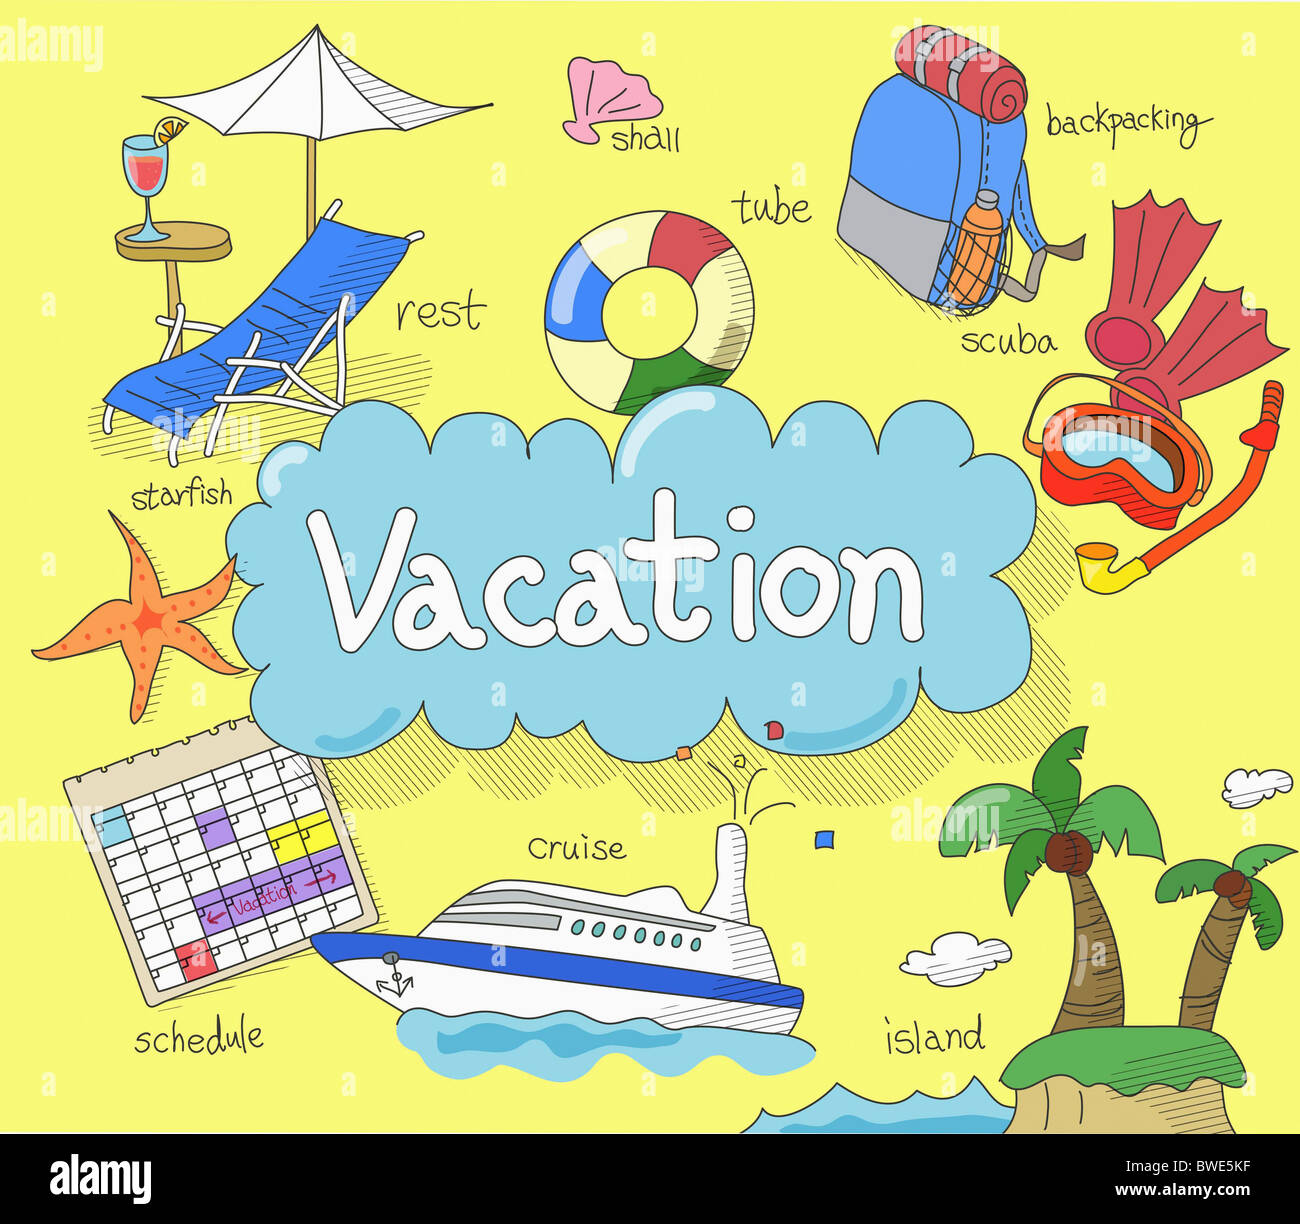 illustration of vacation time - Stock Image